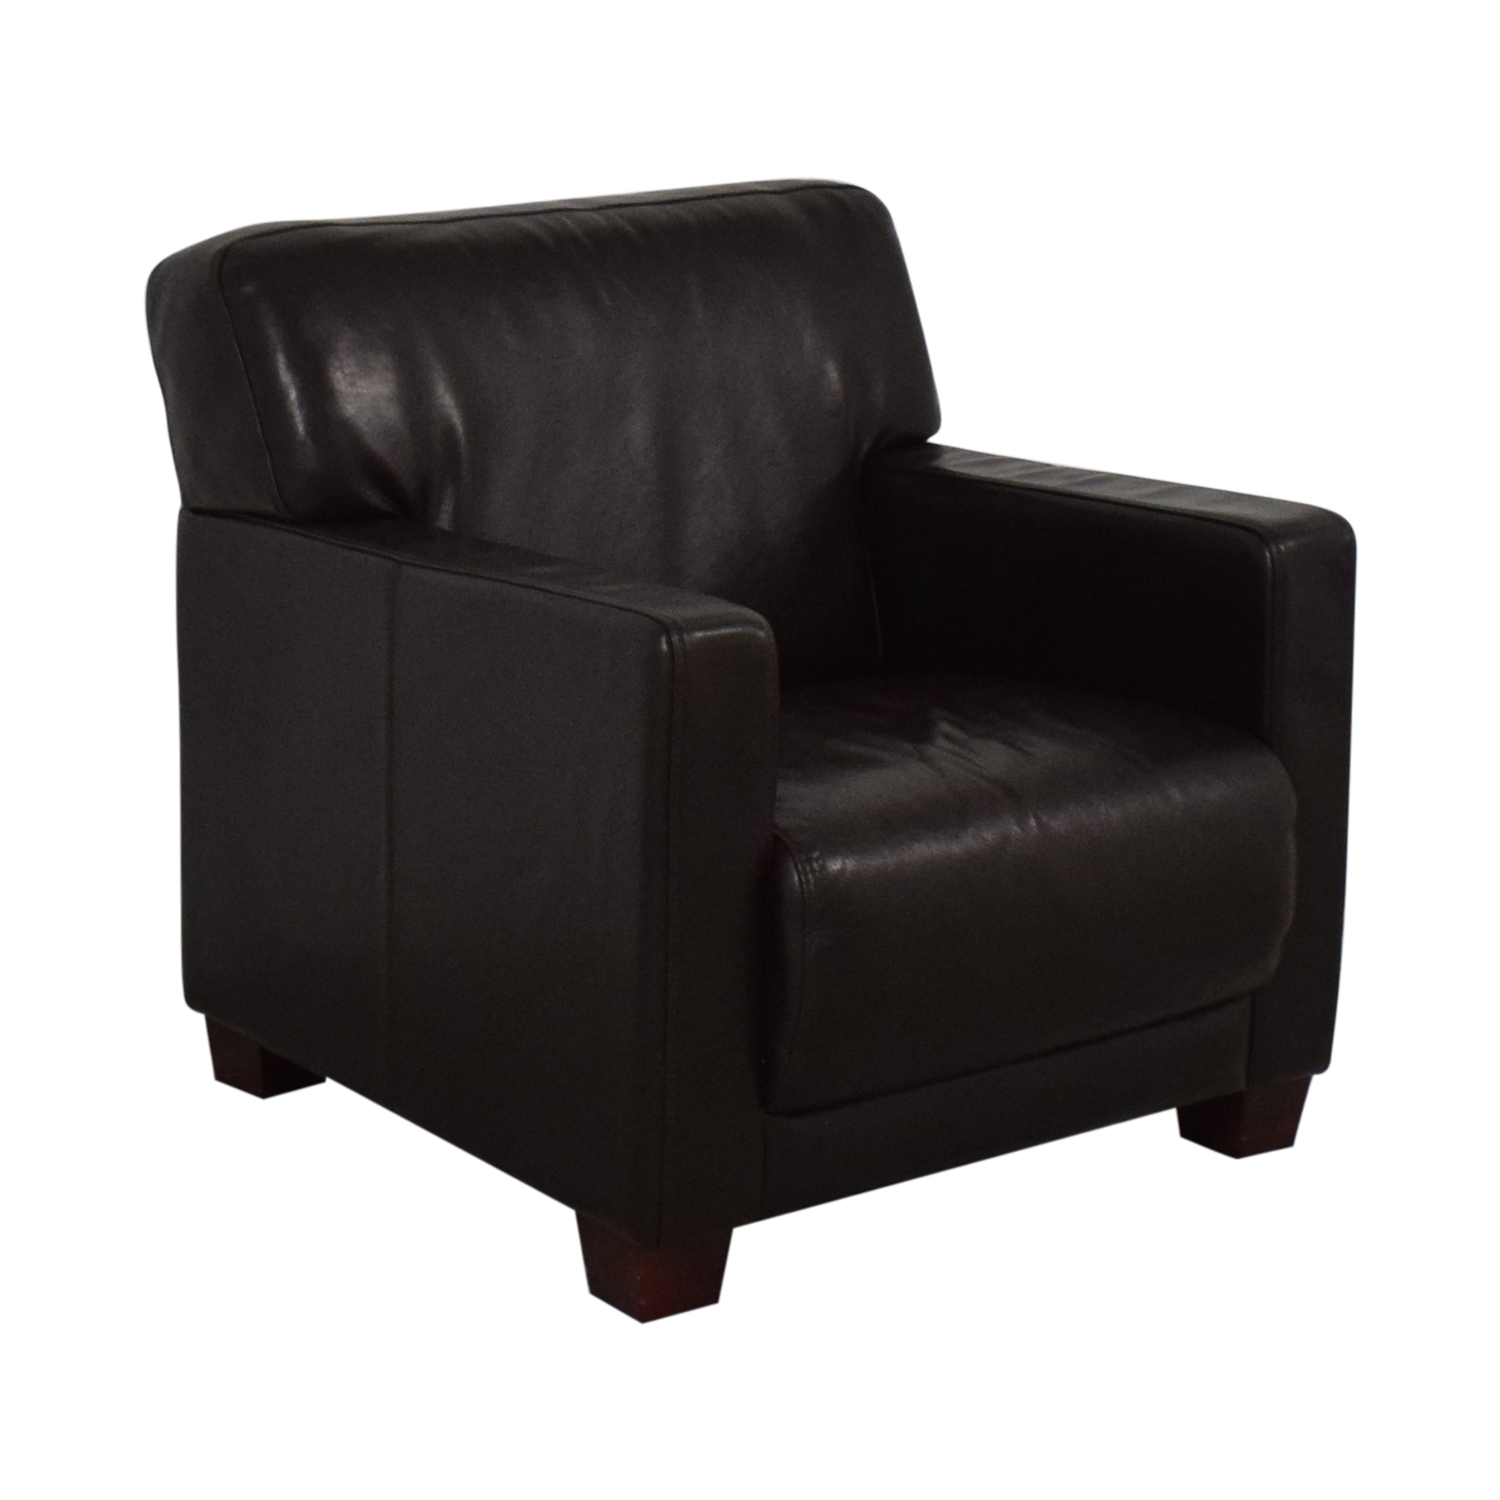 Door Store Club Armchair sale